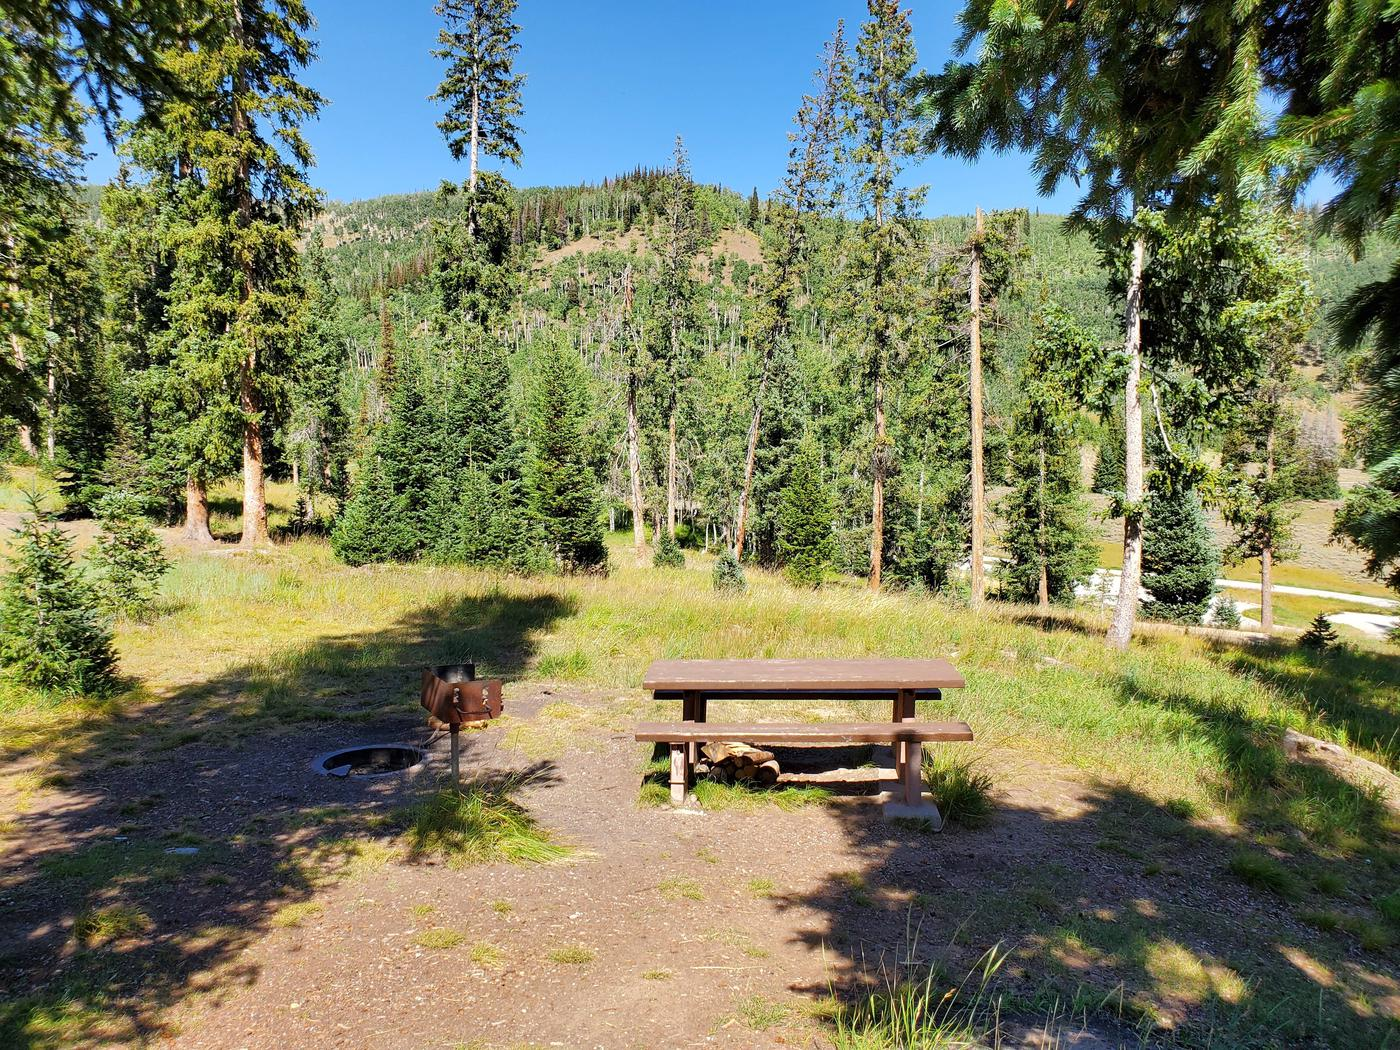 Flat Canyon Campground Site #9cFlat Canyon Campground Site #9